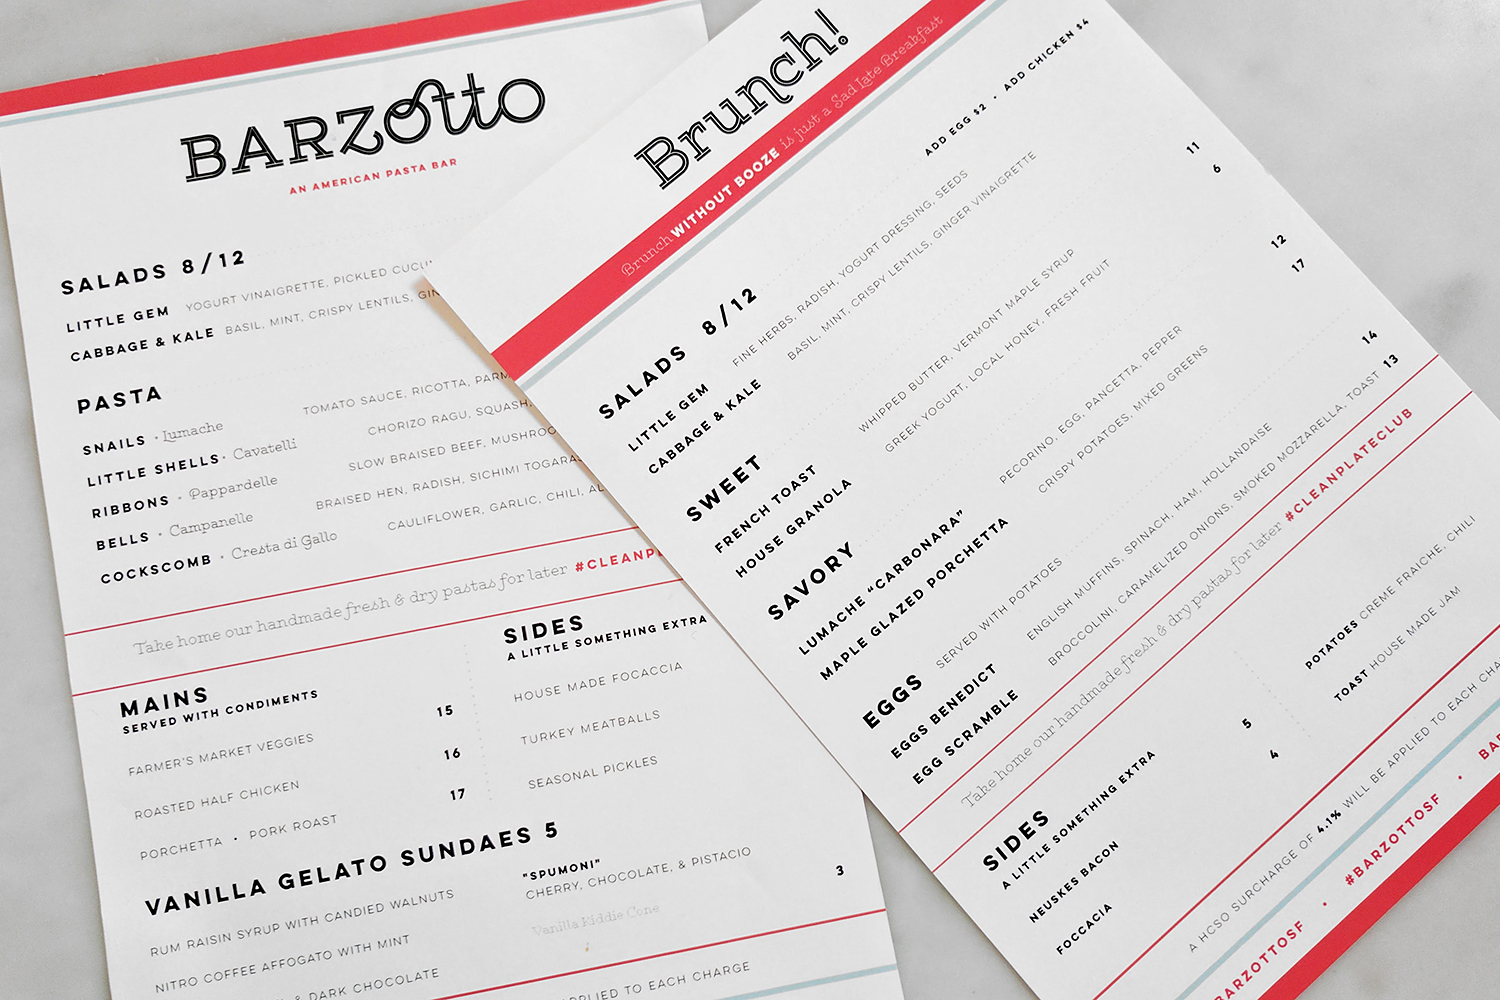 10barzotto-sf-sanfrancisco-food-restaurant-brunch